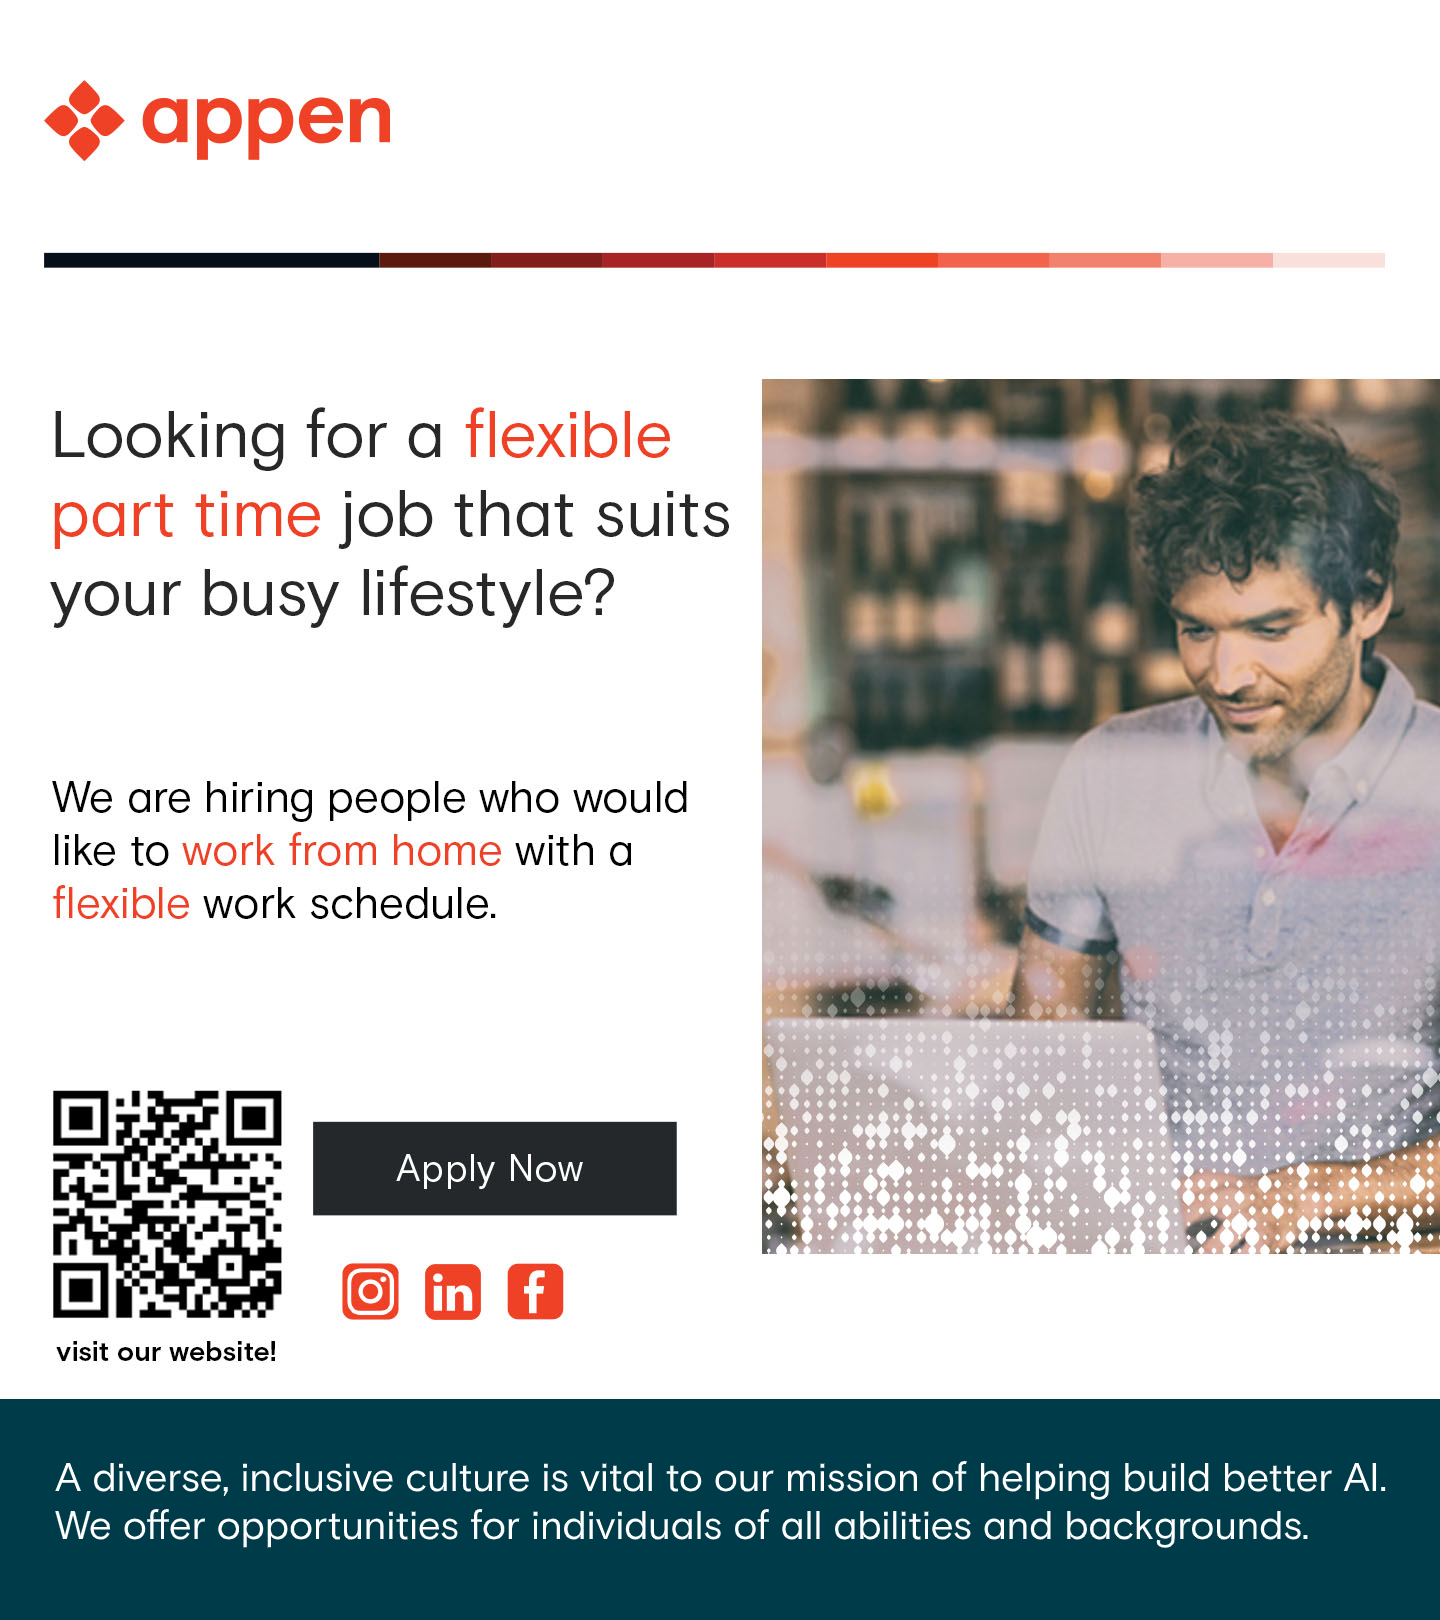 We are currently looking for small business owners in Germany for an interesting job!